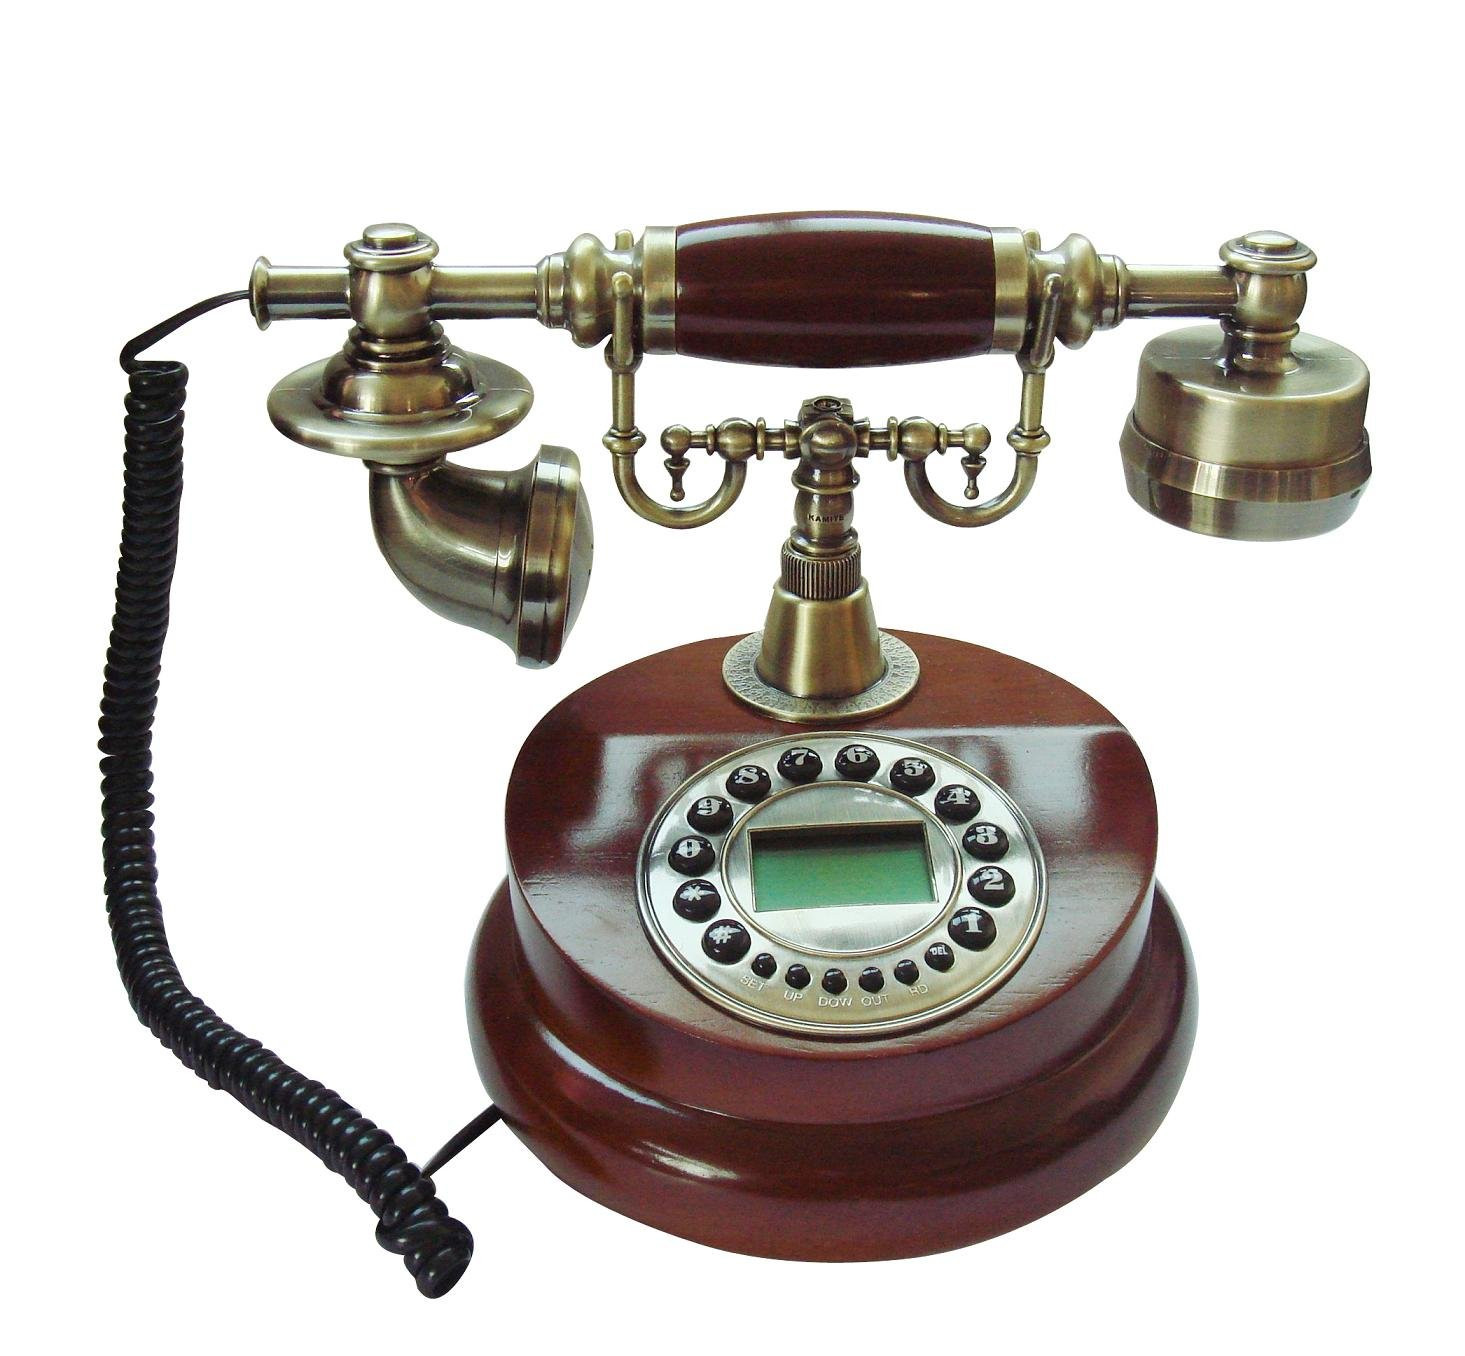 Best Of Old Wooden Antique Telephone Buy Wooden Telephone Old Wooden Phone Of Adorable 43 Images Old Wooden Phone